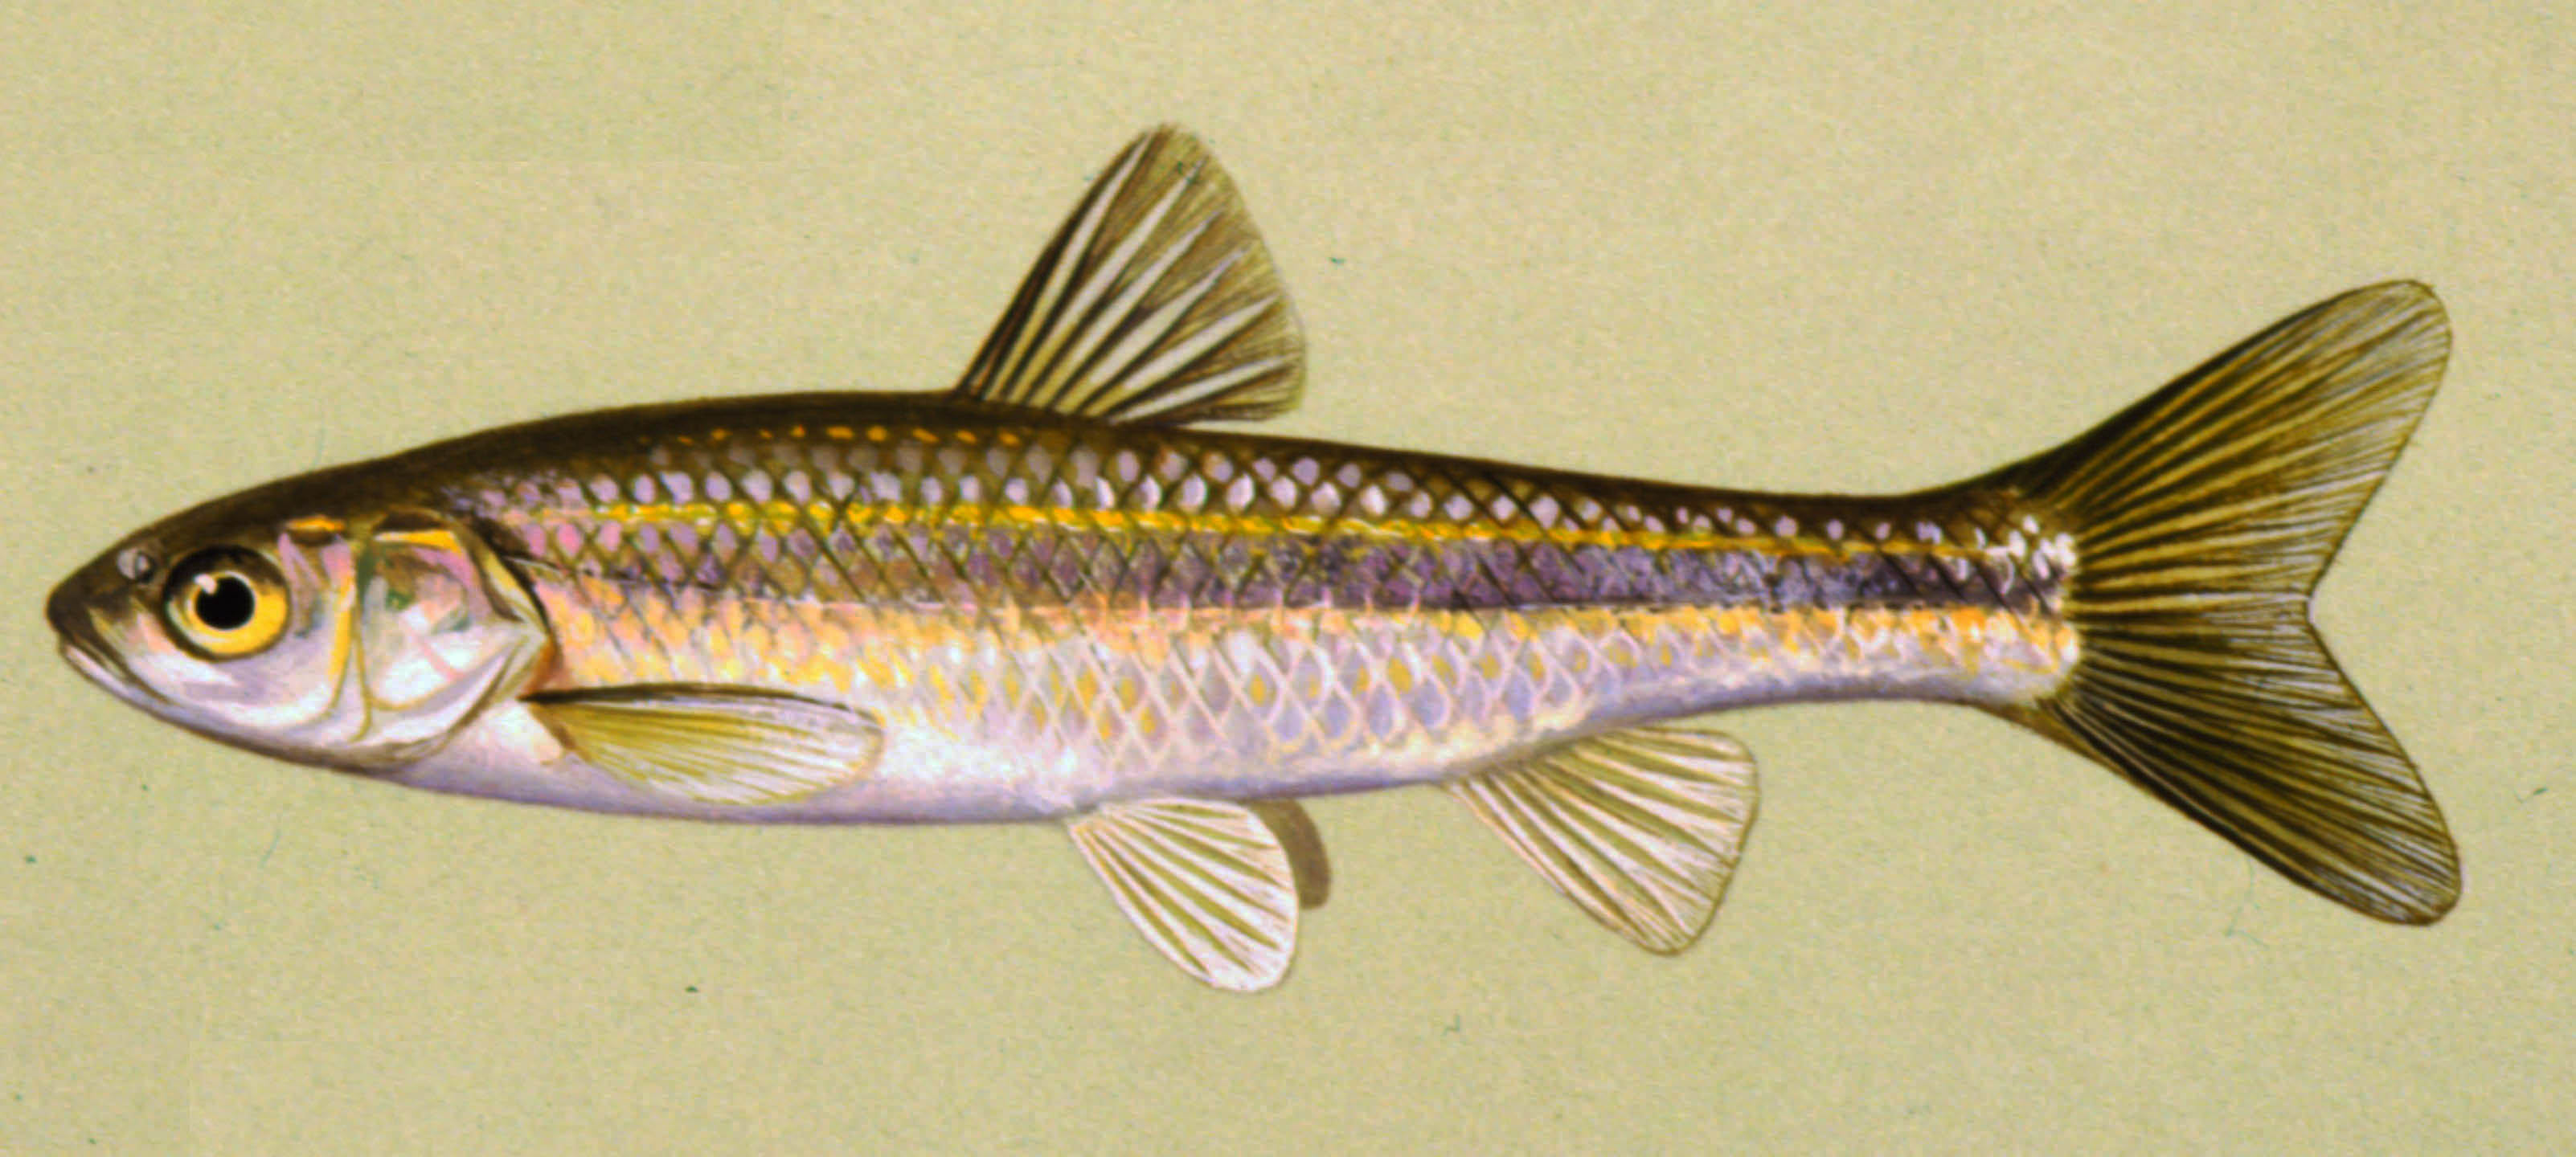 Details brassy minnow for Iowa fishing regulations